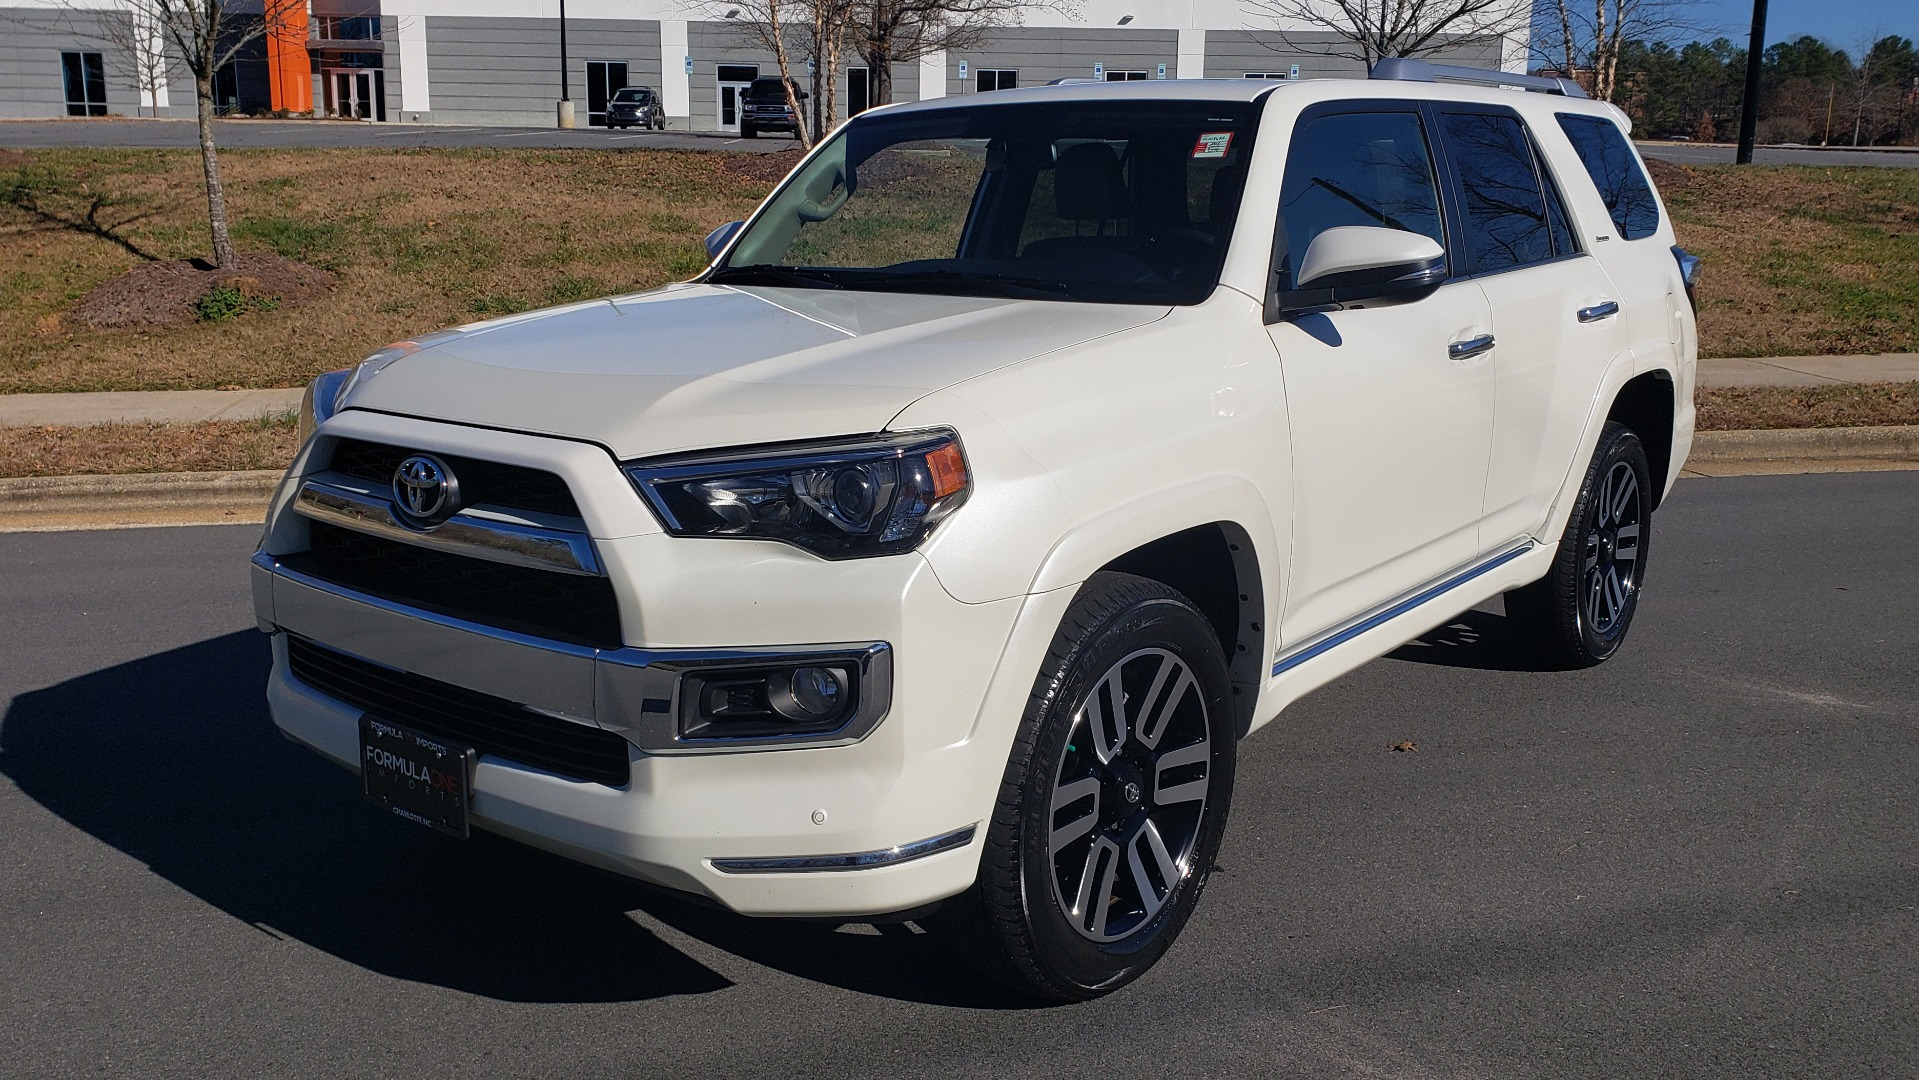 Used 2018 Toyota 4RUNNER LIMITED 4X4 / 4.0L V6 / AUTO / NAV / SUNROOF / JBL AUDIO / REARVIEW for sale Sold at Formula Imports in Charlotte NC 28227 1